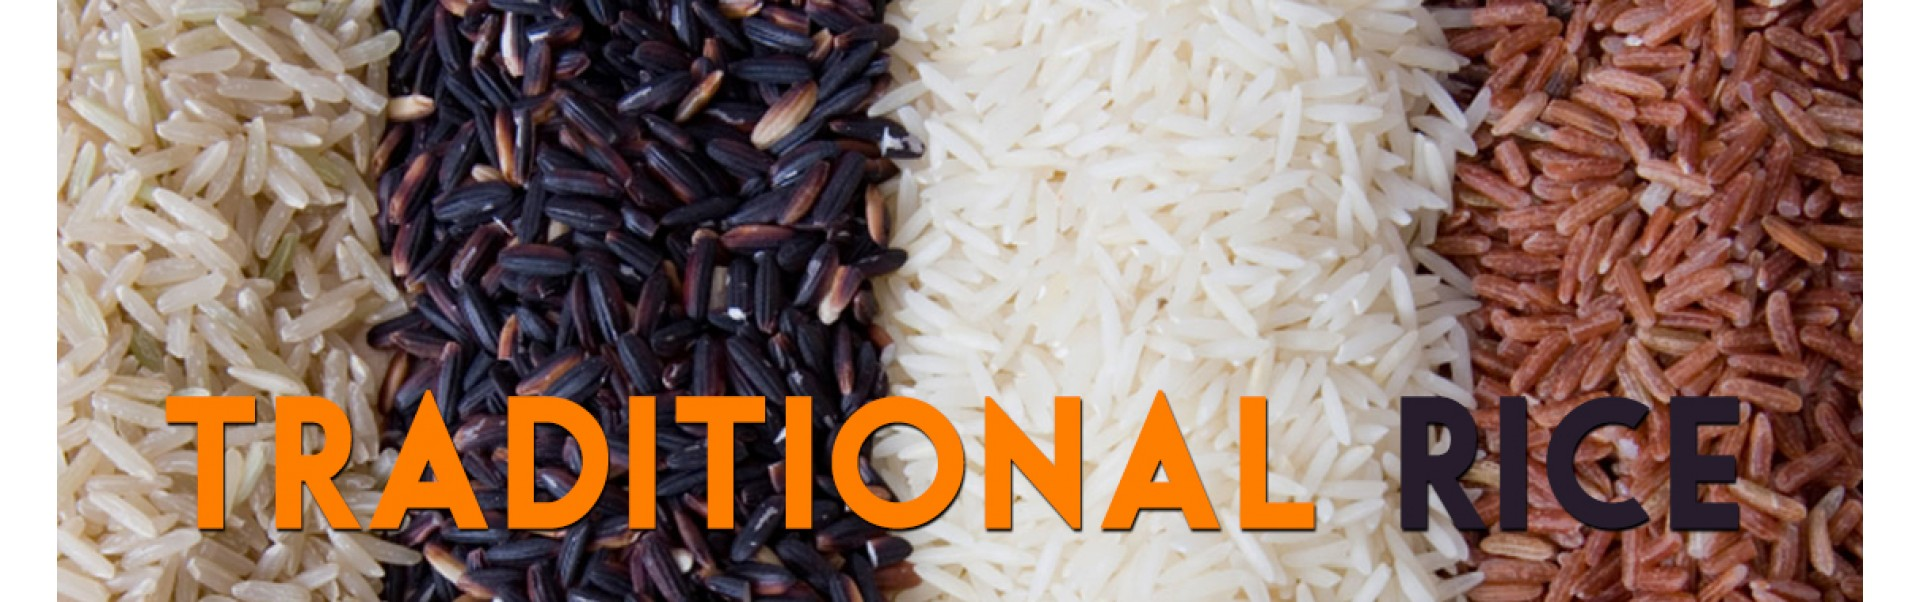 Traditional Rice